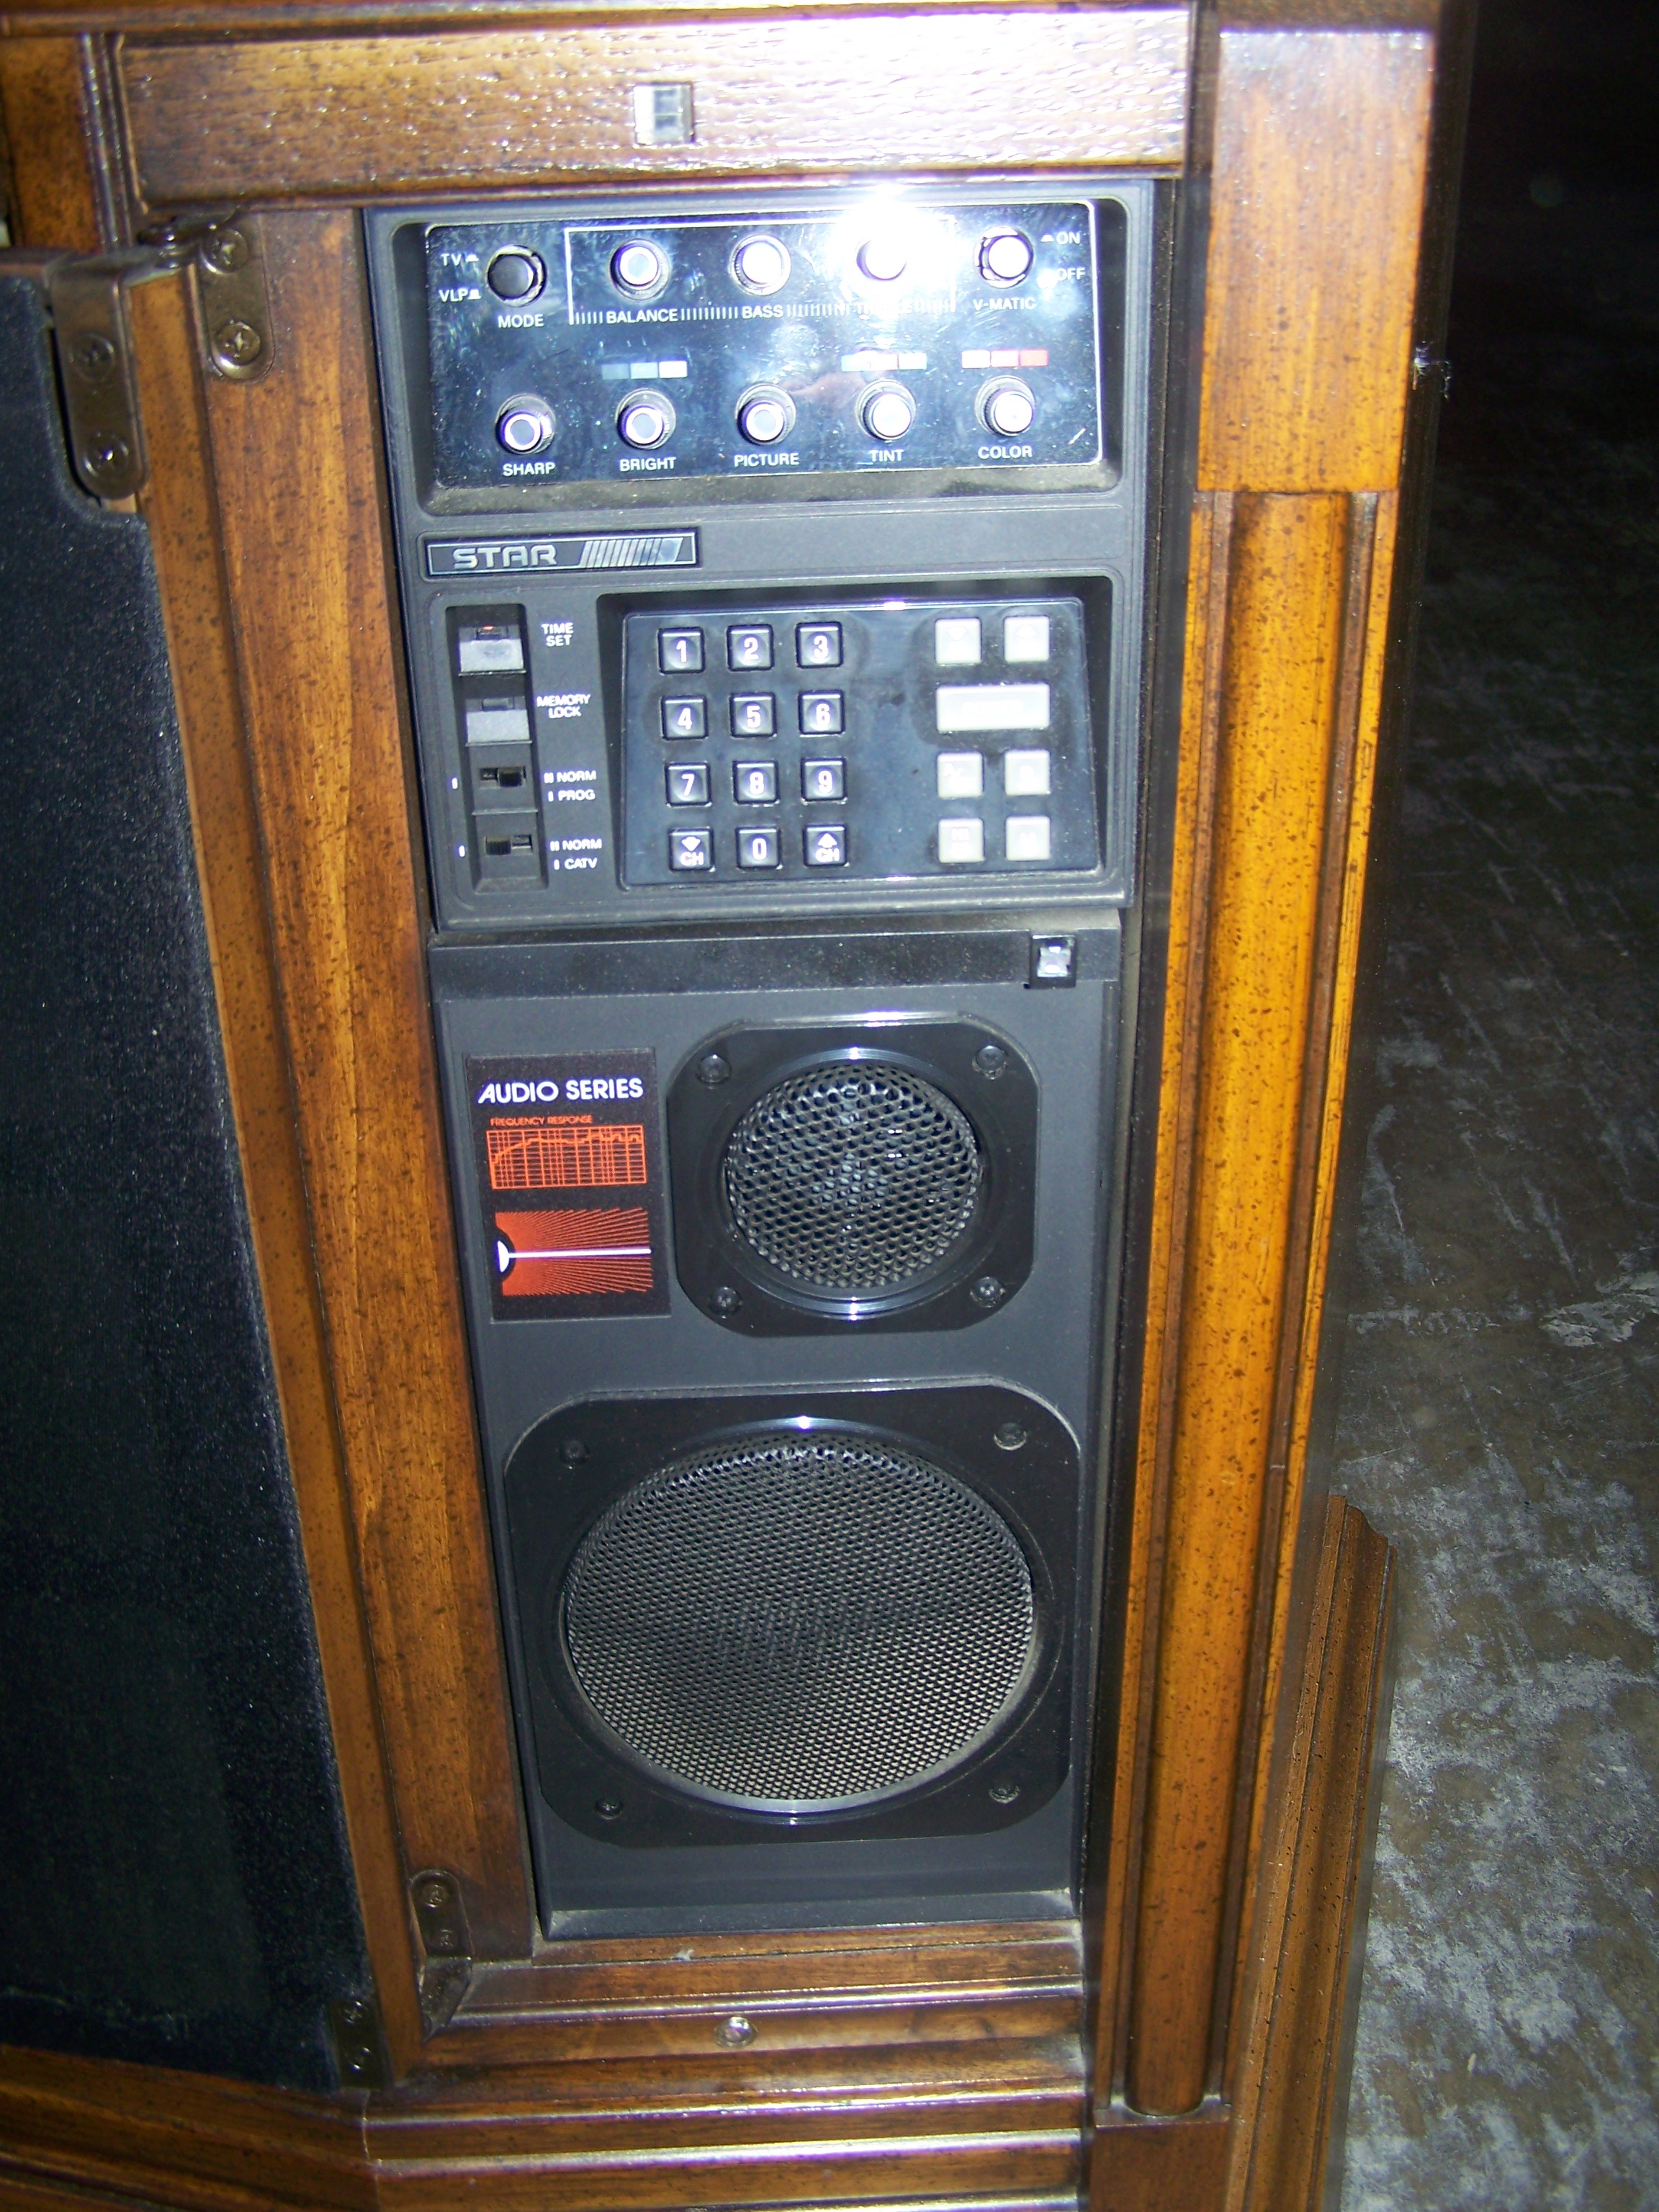 1985 STAR Audio Series Color TV